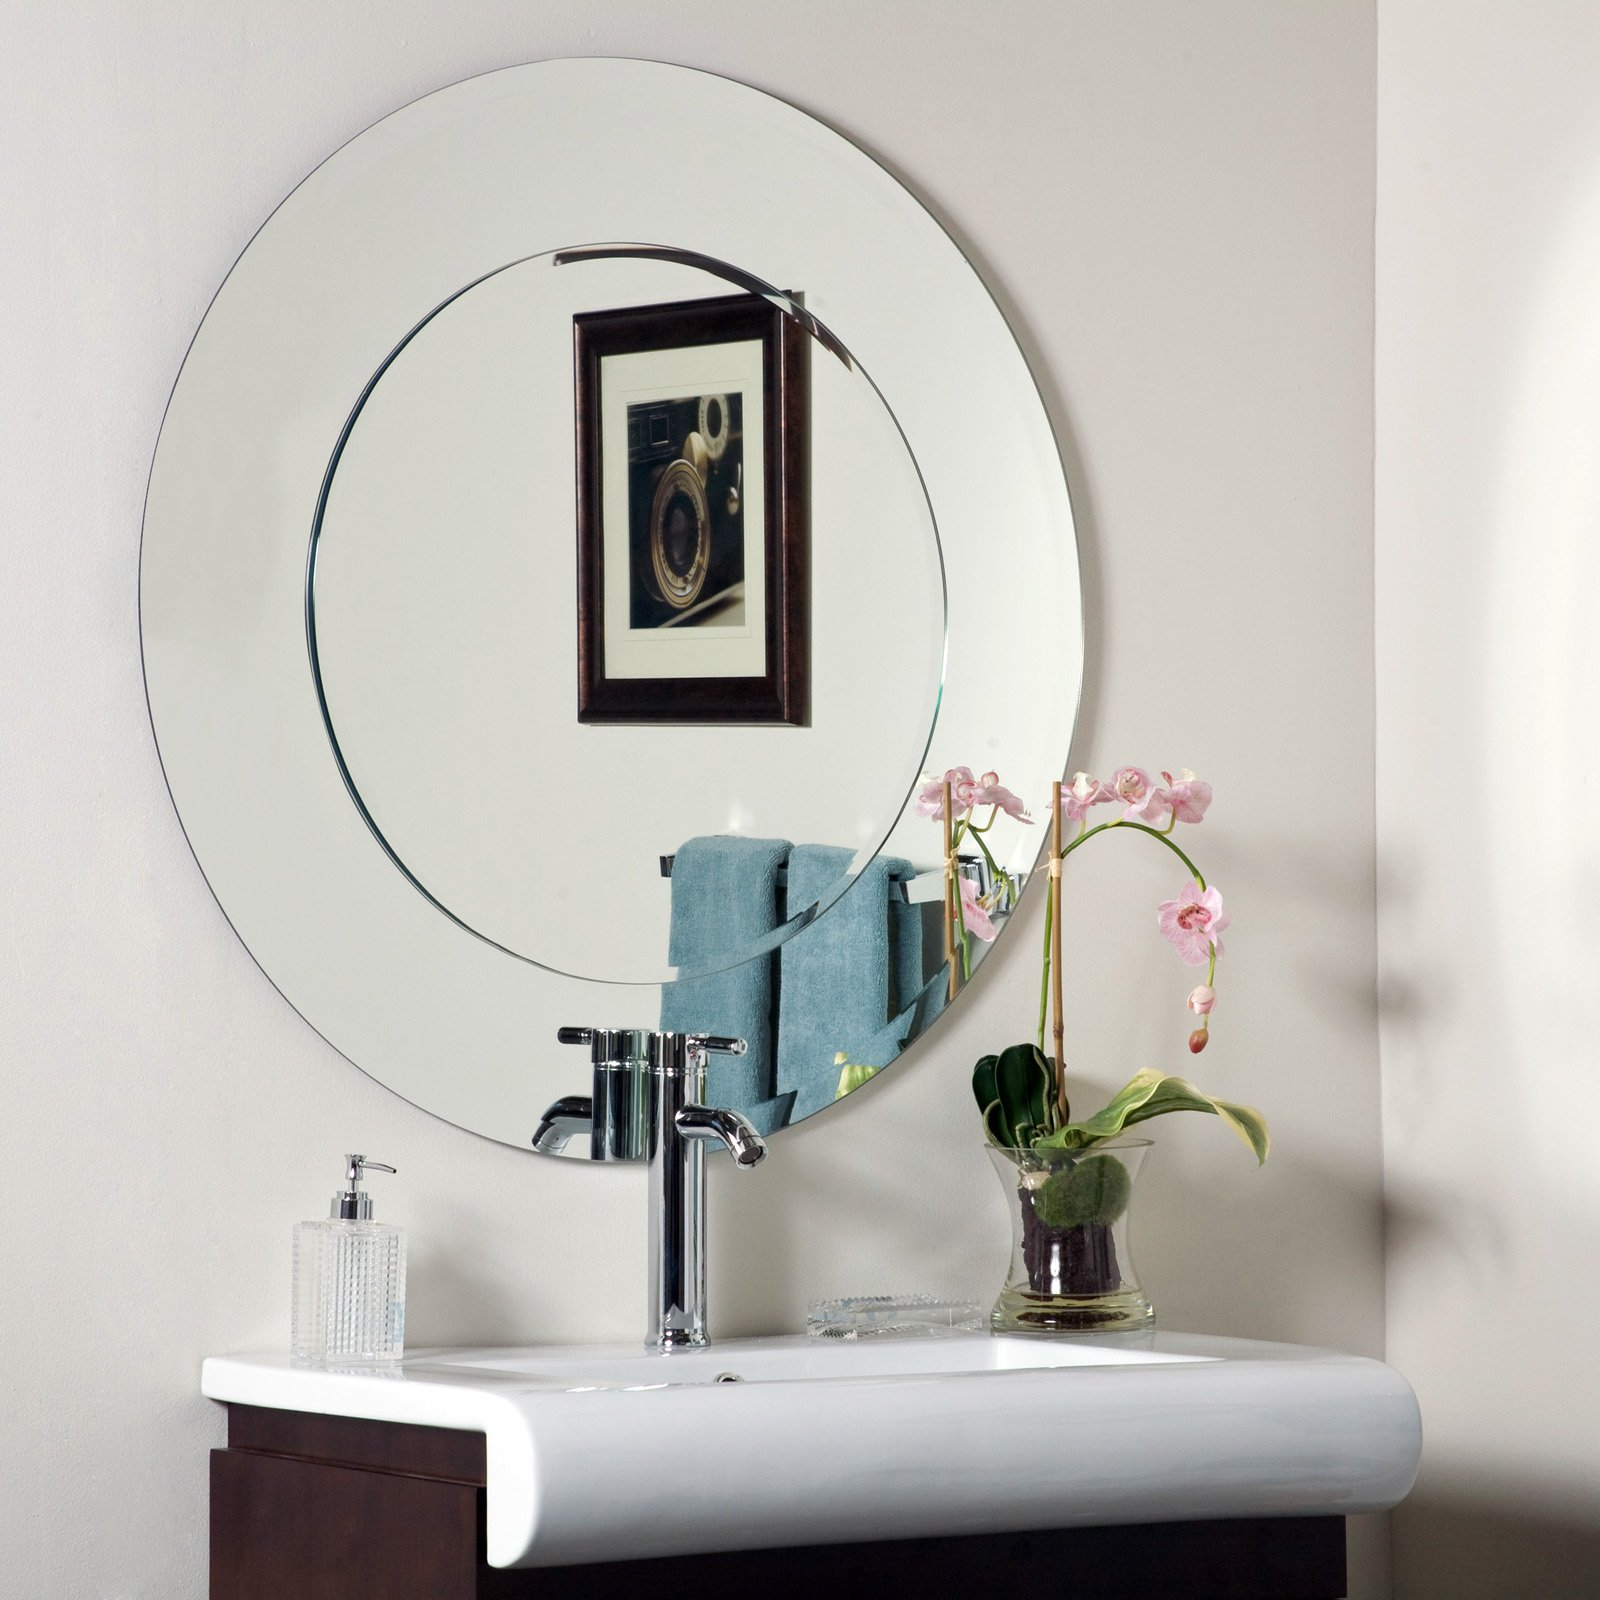 Décor Wonderland Oriana Modern Frameless Bathroom Mirror 35 diam. in. by Decor Wonderland